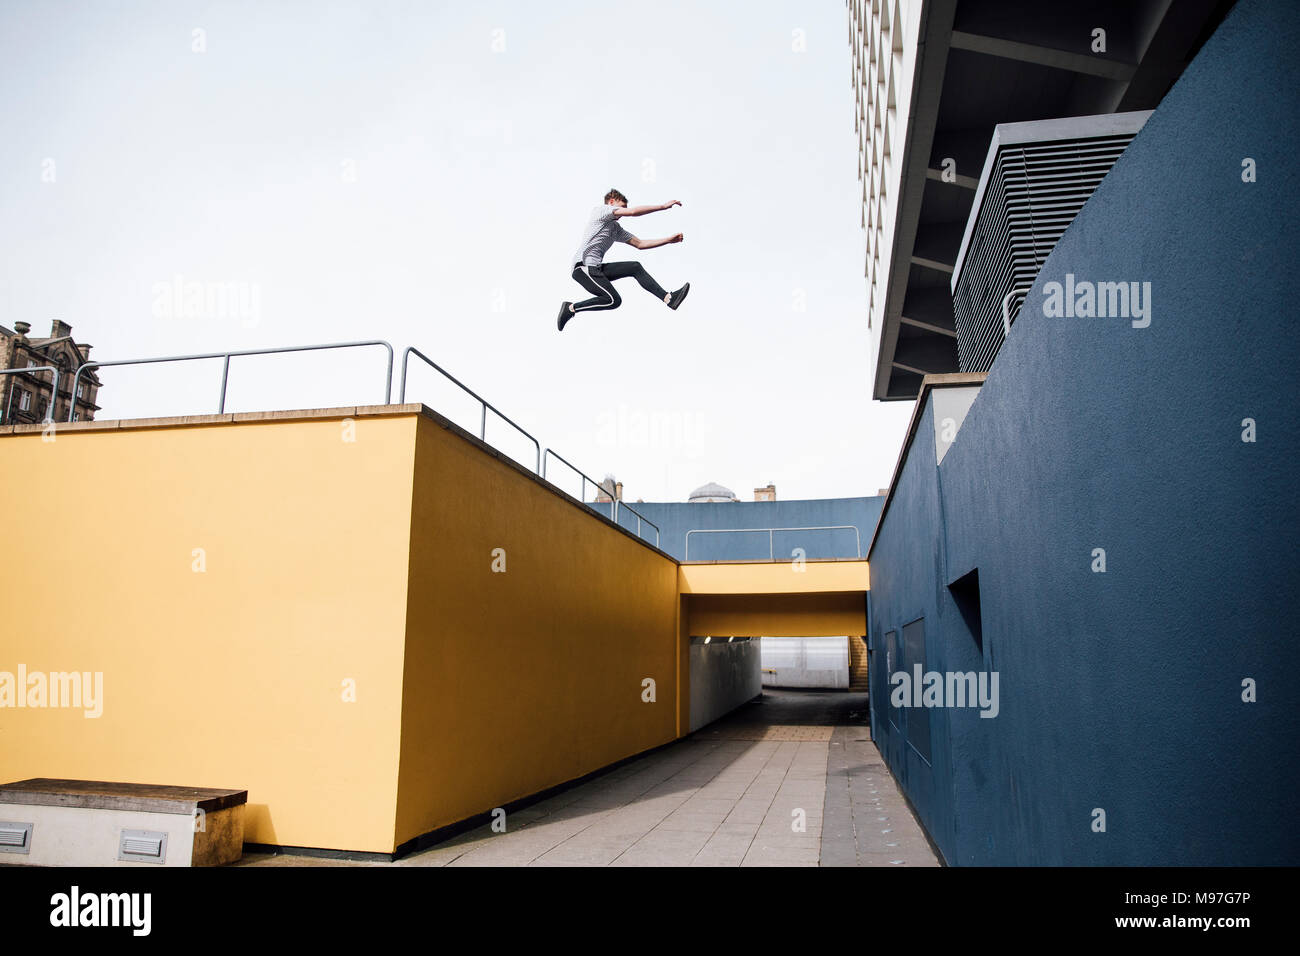 Freerunner is jumping beween colourful buildings in the city. Stock Photo